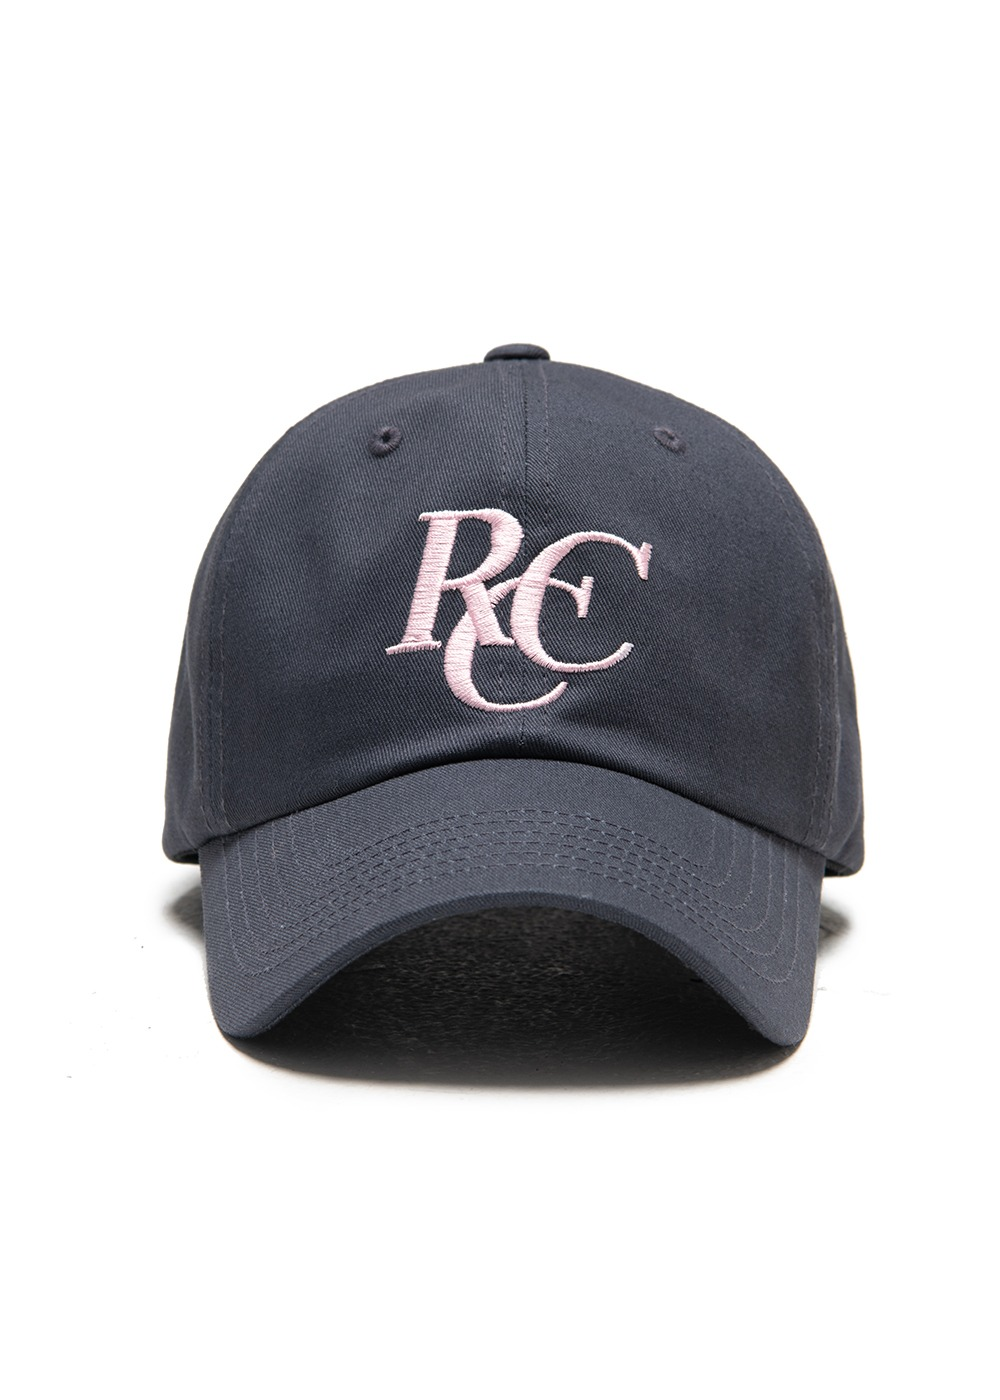 RCC Logo ball cap [CHARCOAL]RCC Logo ball cap [CHARCOAL]자체브랜드